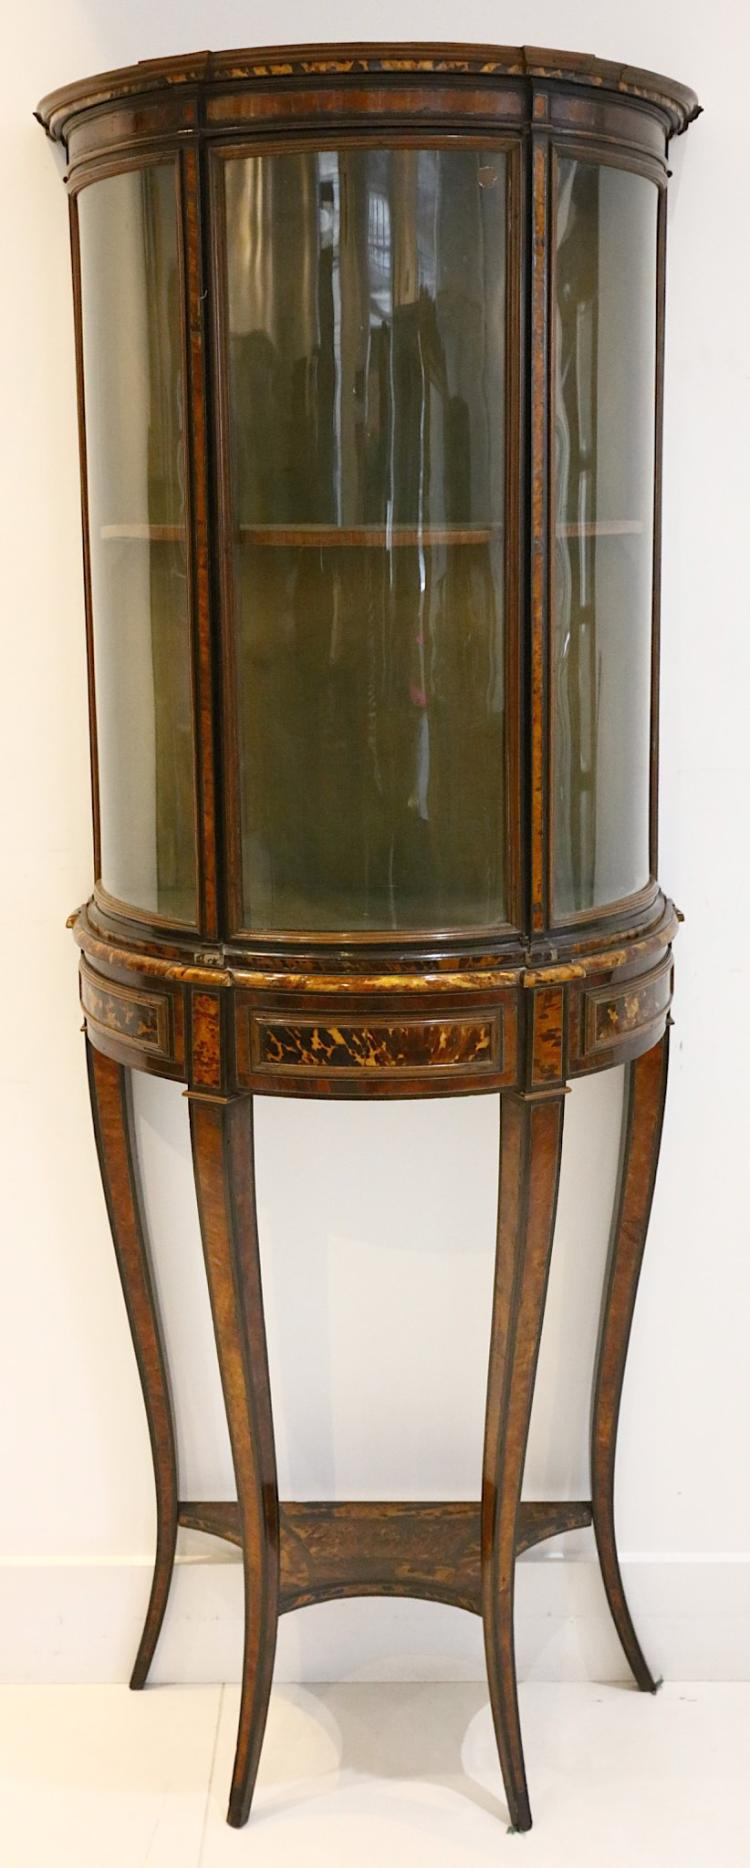 A bow front display cabinet, 19th century, possibl